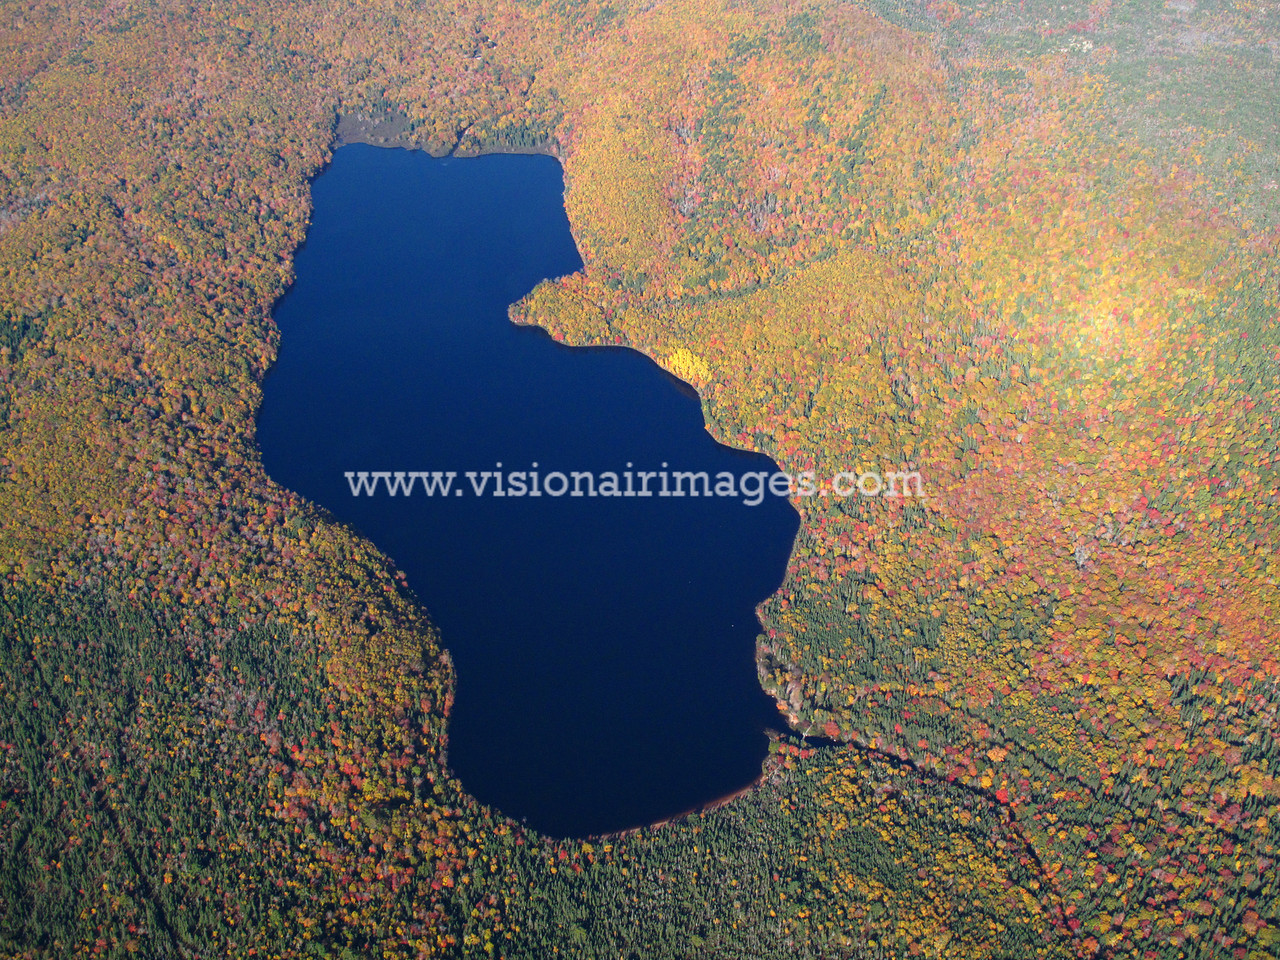 Warren Lake, 3000', Cape Breton Highlands National Park, Ingonish Area, Cape Breton, Nova Scotia